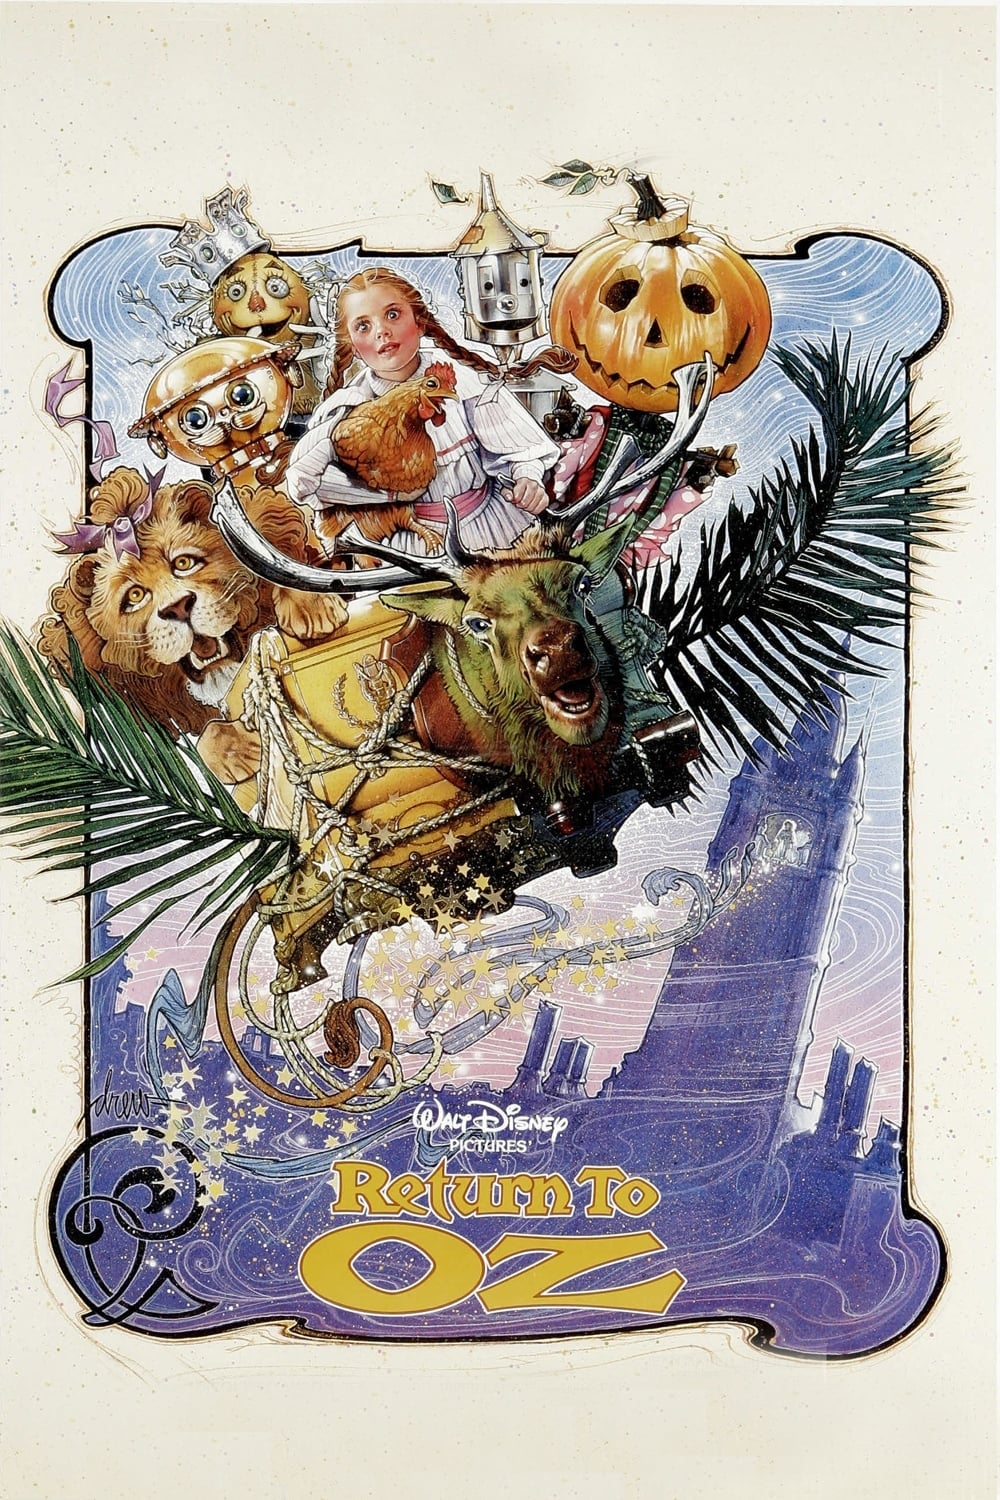 Image Return to Oz